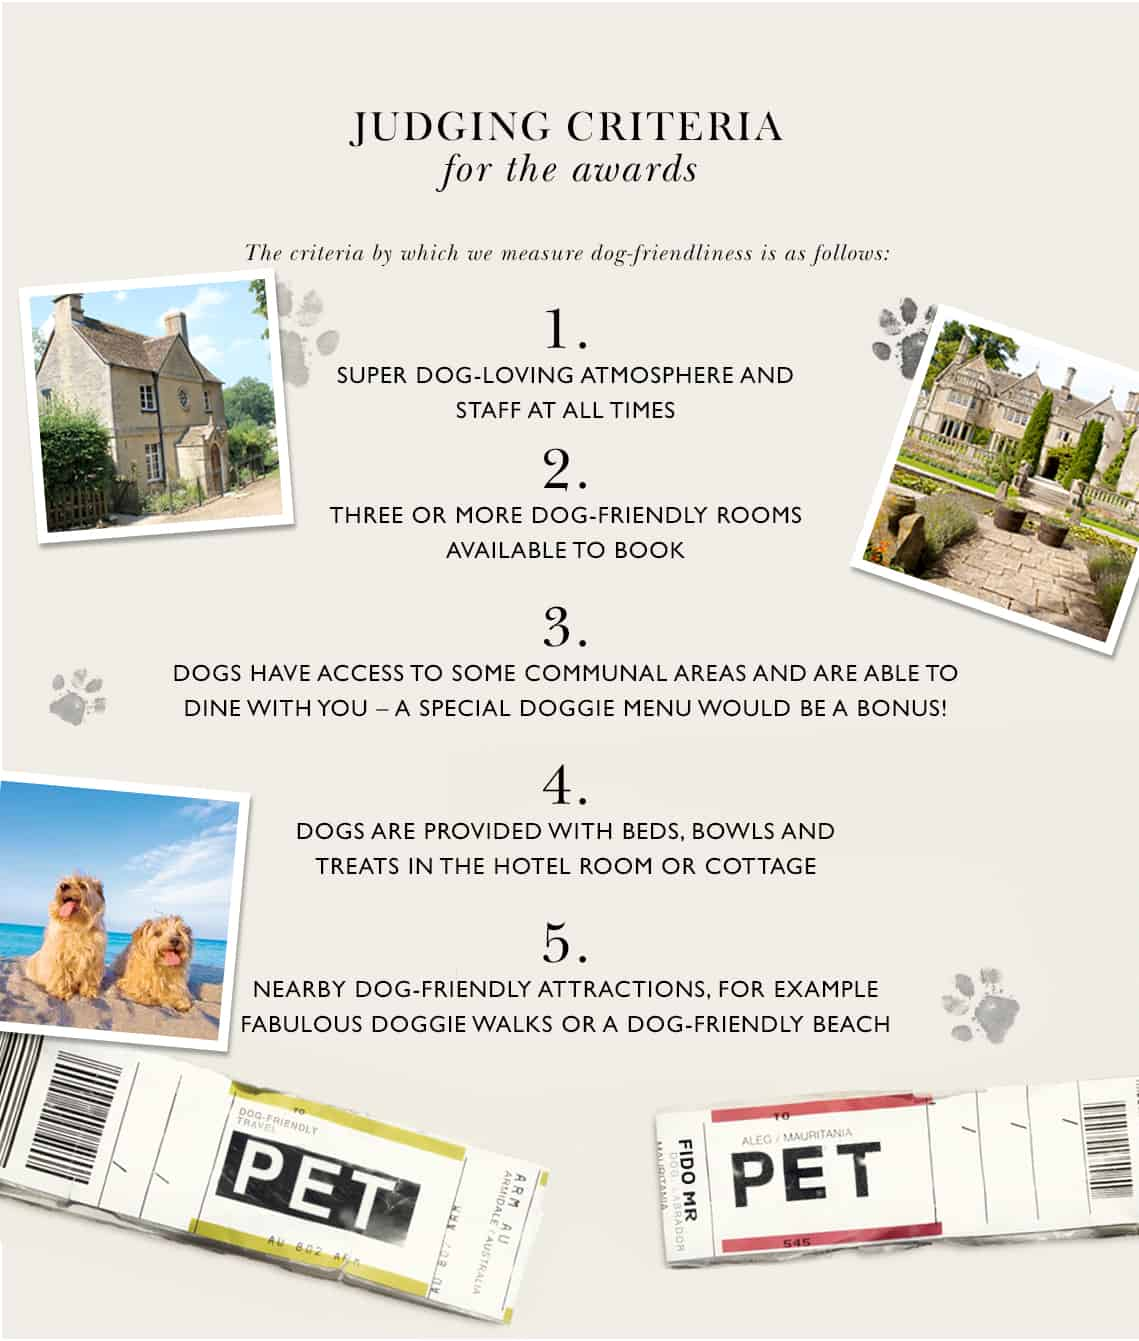 Dog-Friendly Travel Awards 2018 Judging Criteria